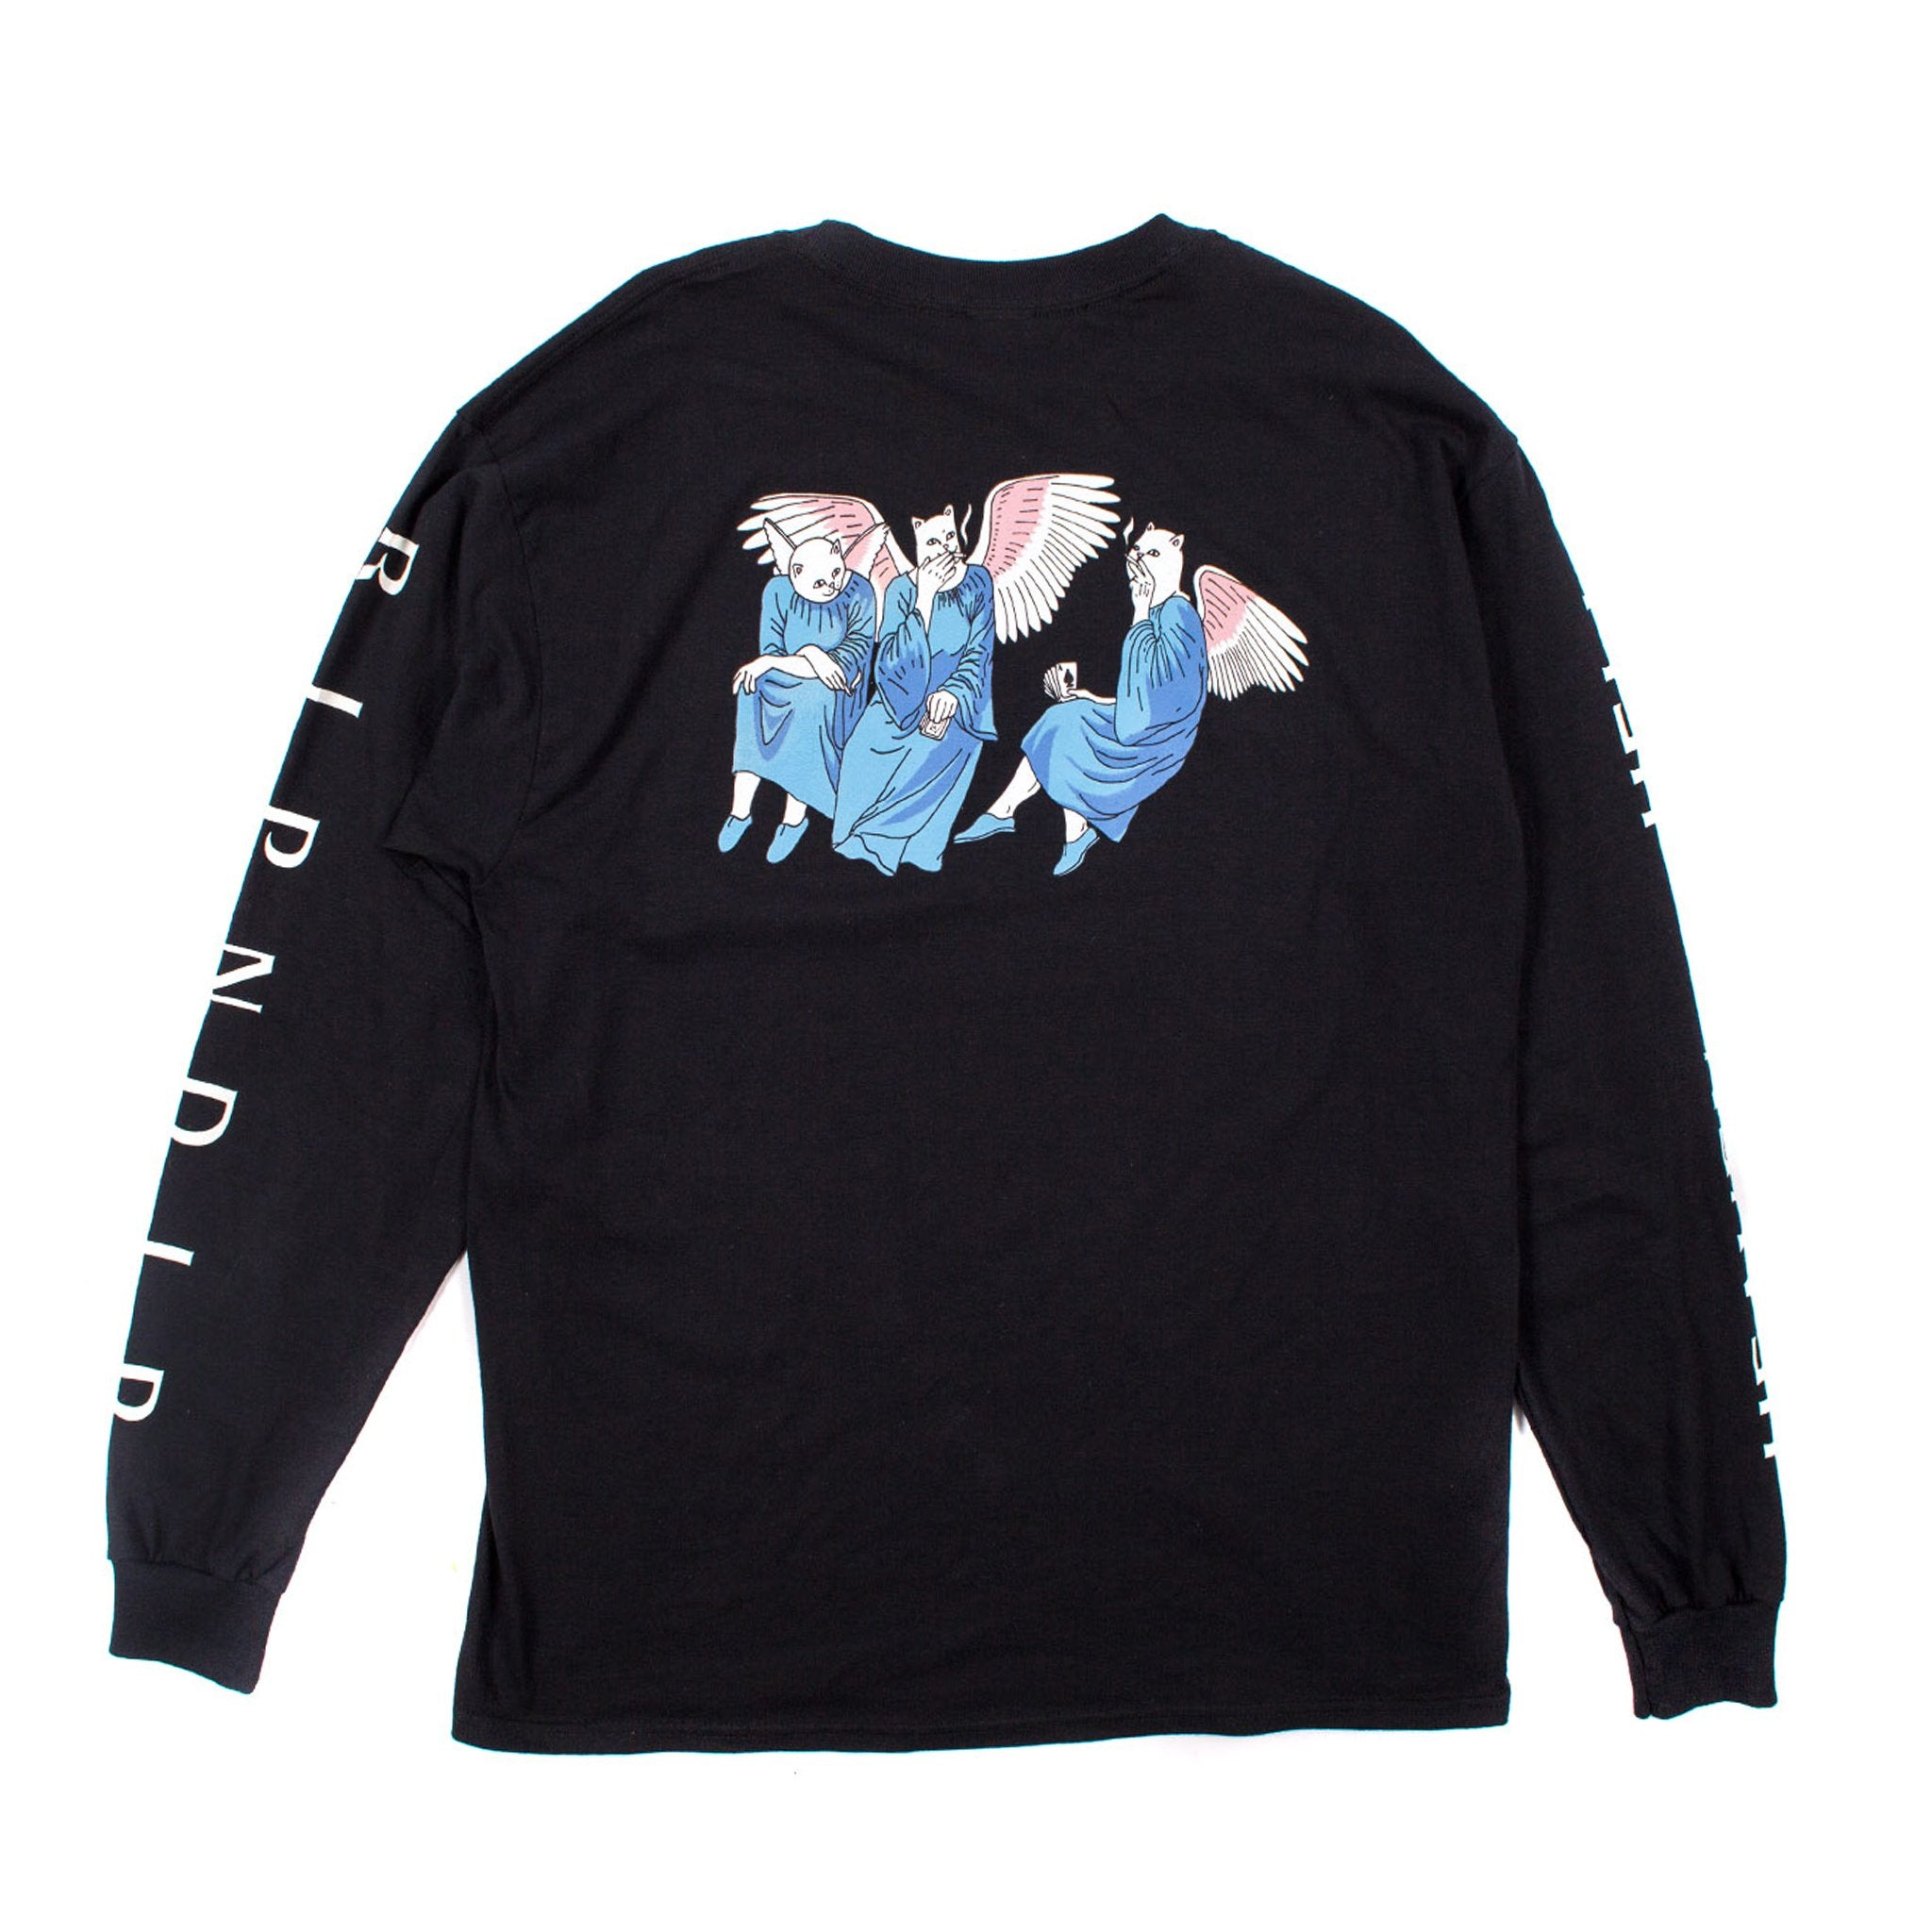 RIPNDIP - Heaven and Hell Men's L/S Tee, Black - The Giant Peach